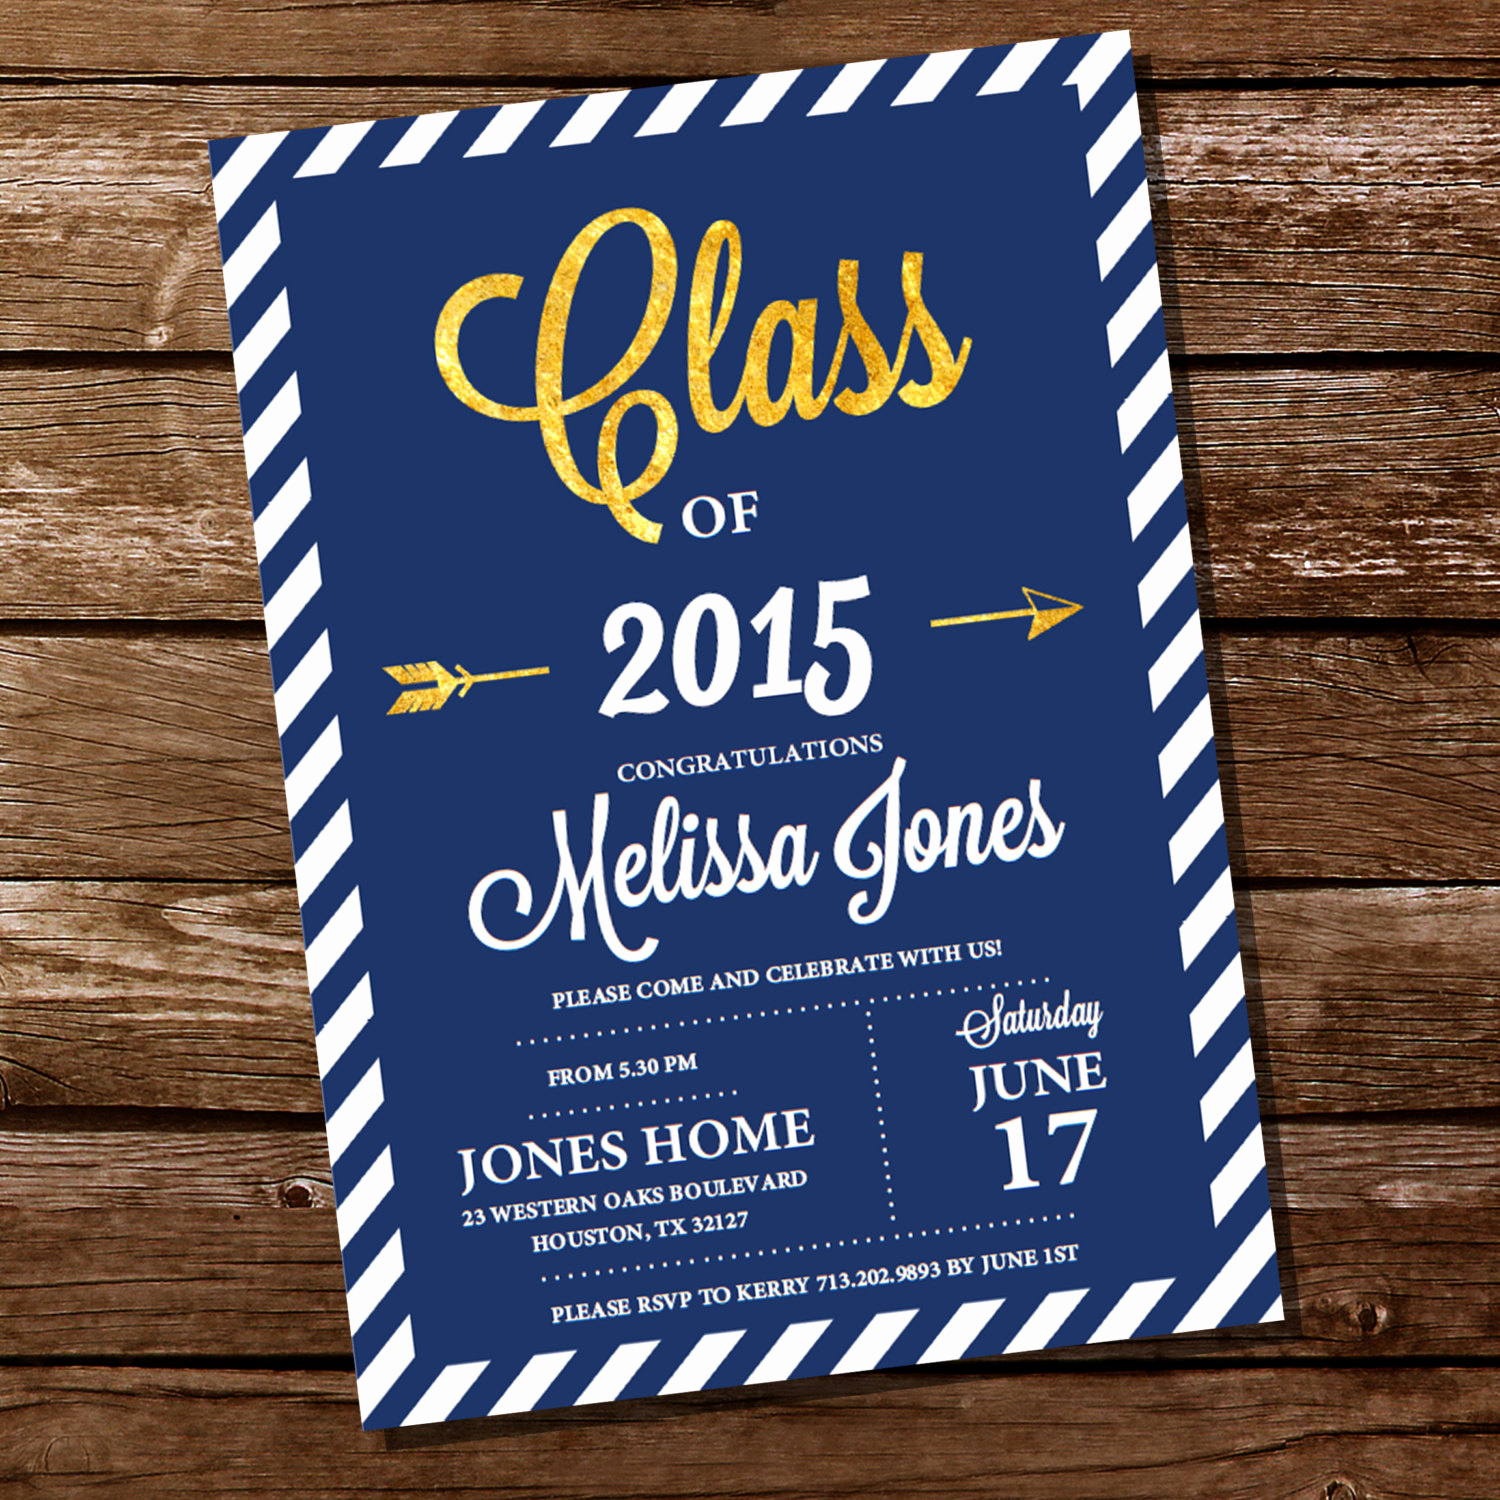 Blue and Gold Invitation Template Inspirational Navy Blue and Gold Graduation Invitation Gold Graduation